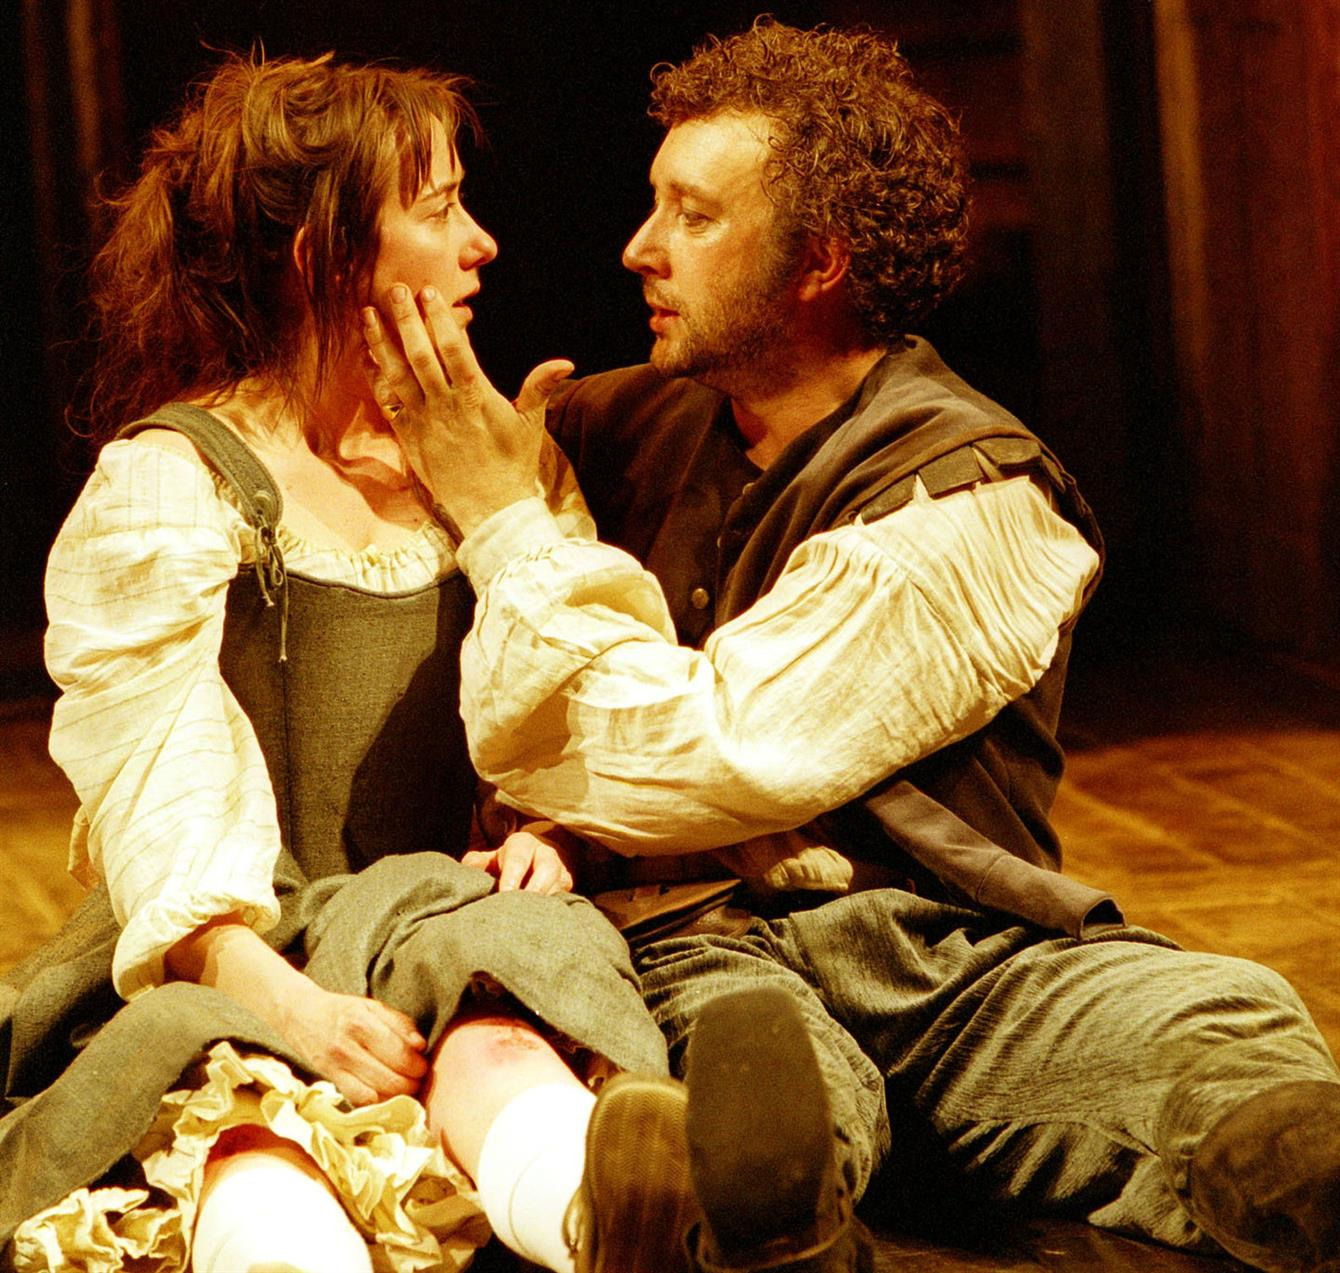 katherine and petruchio in shakespeares taming of the shrew Shakespeare's most outrageous comedy, the taming of the shrew introduces one of theatre's.